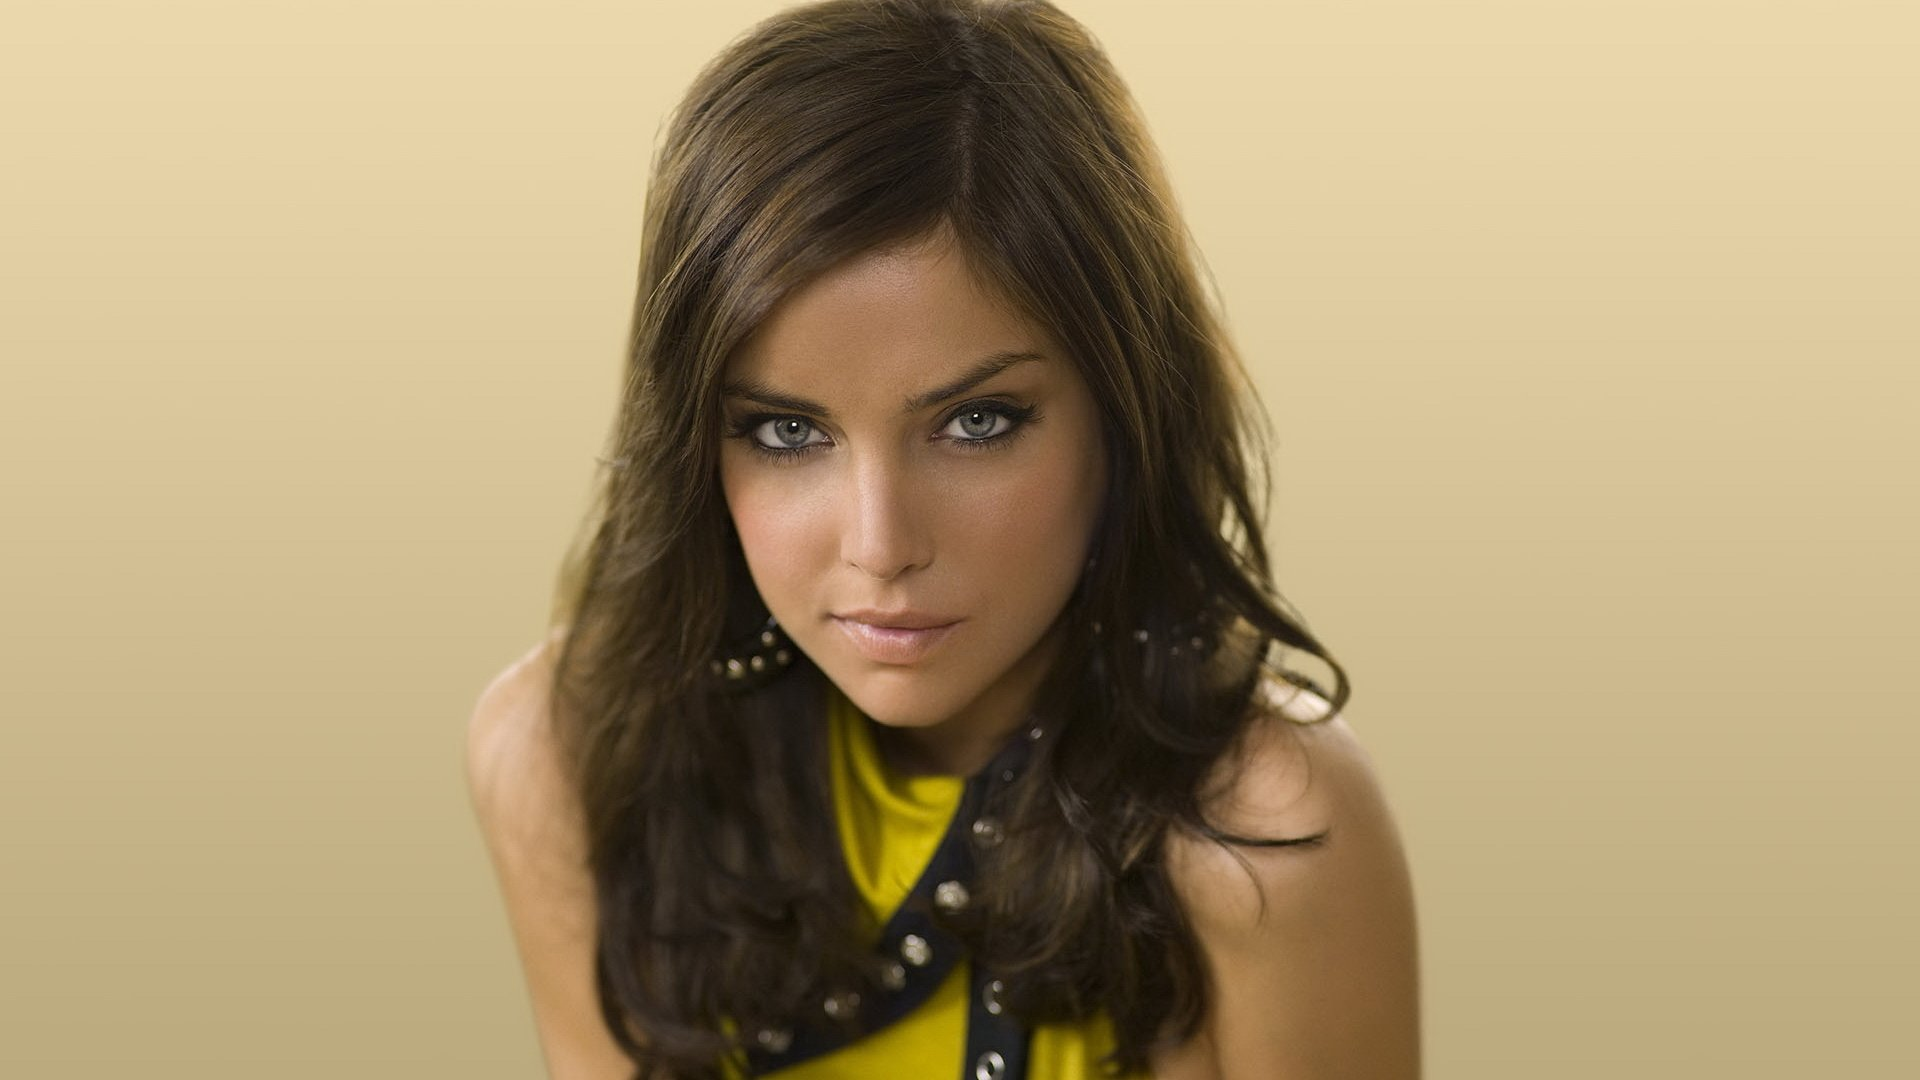 1920x1080 - Jessica Stroup Wallpapers 7